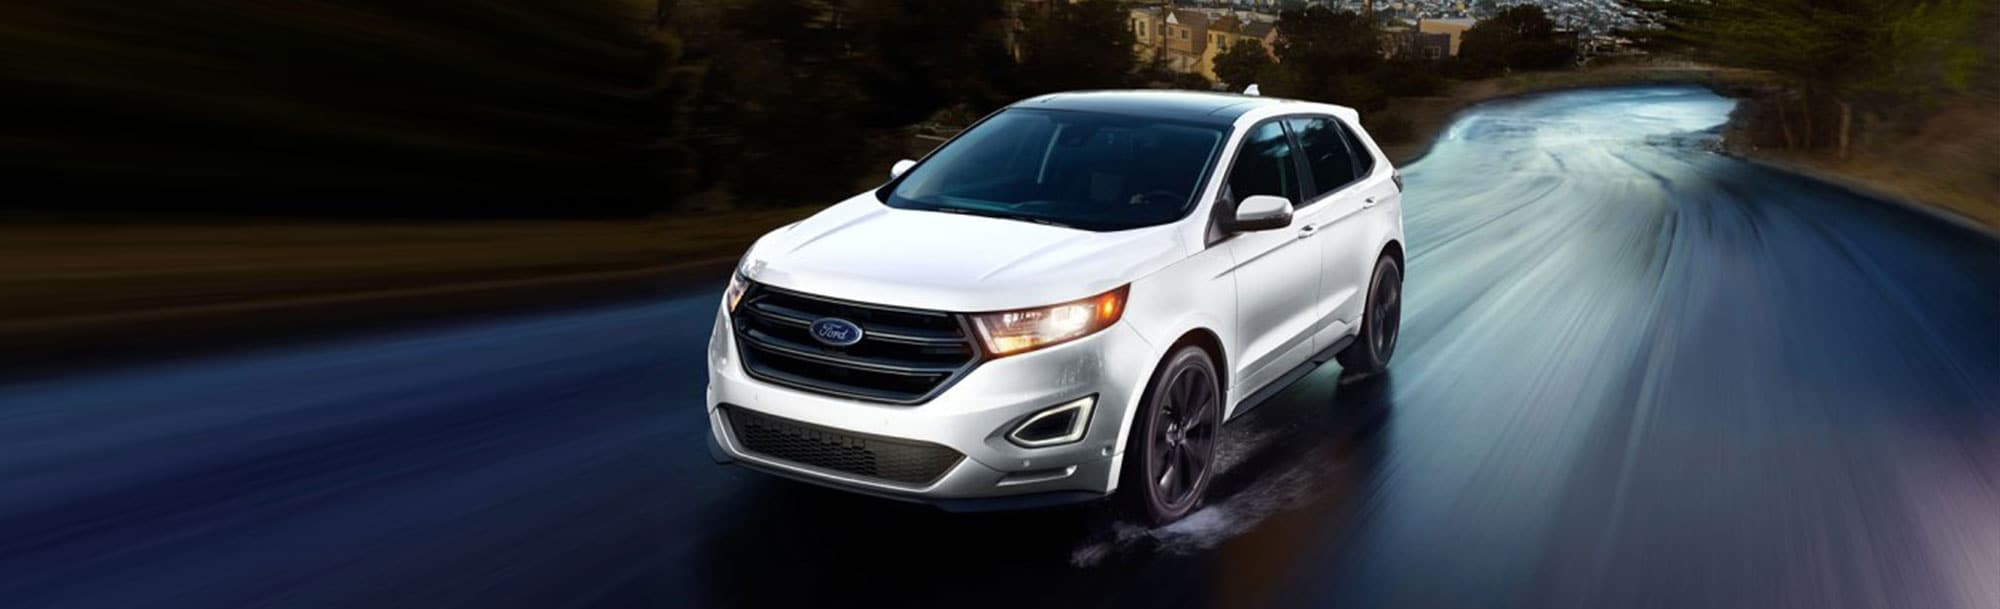 Like To Live On The Edge Then Look For A Vehicle With The Same Attitude The All New  Ford Edge Takes Driving To A New Level With Ambient Lighting